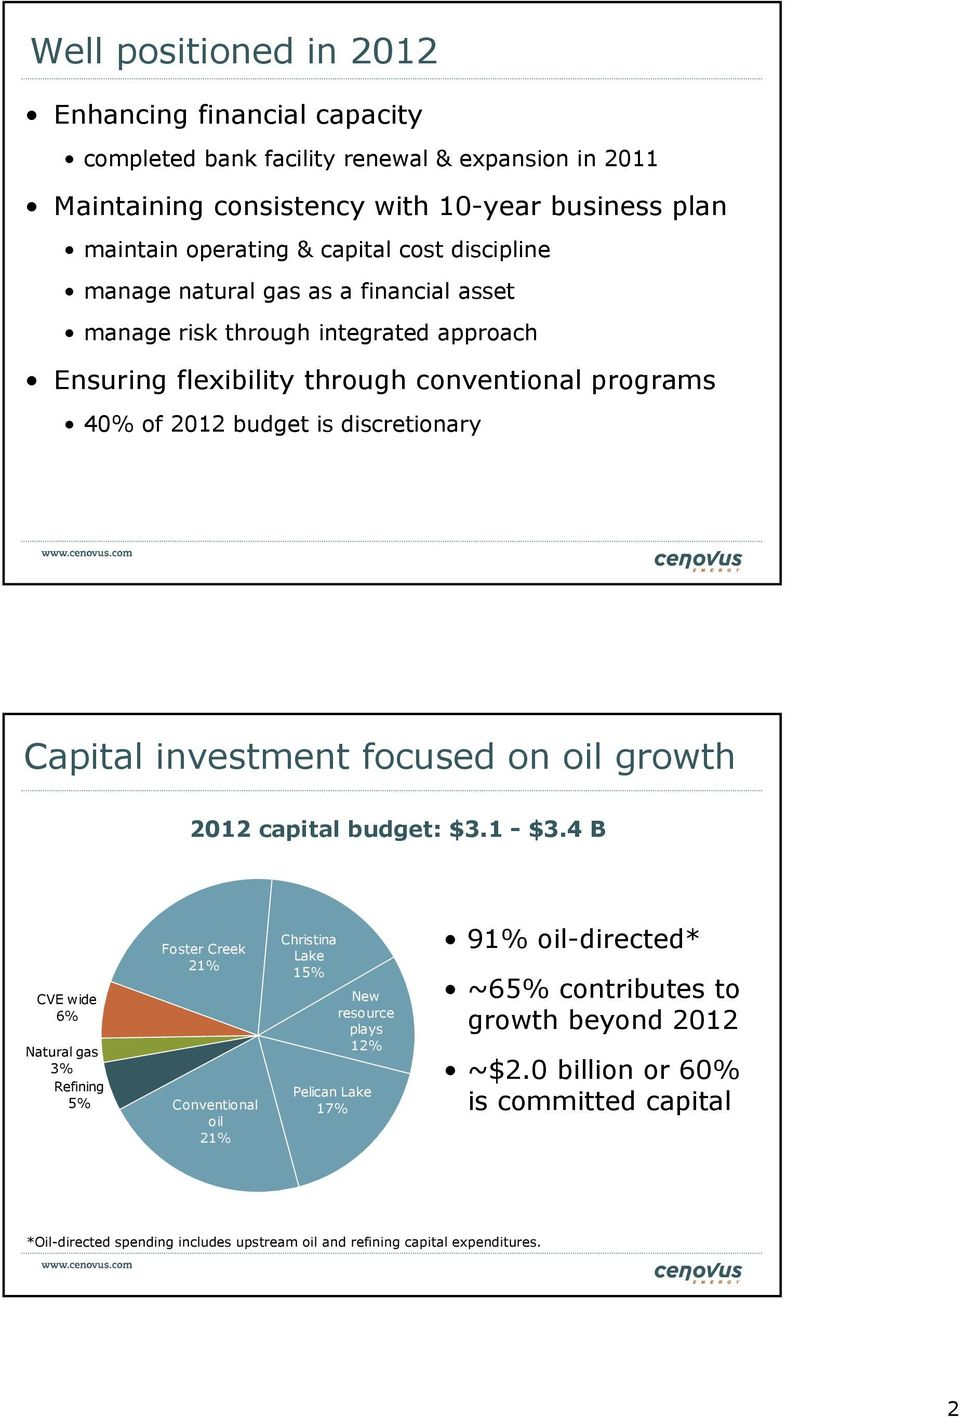 investment focused on oil growth 2012 capital budget: $3.1 - $3.